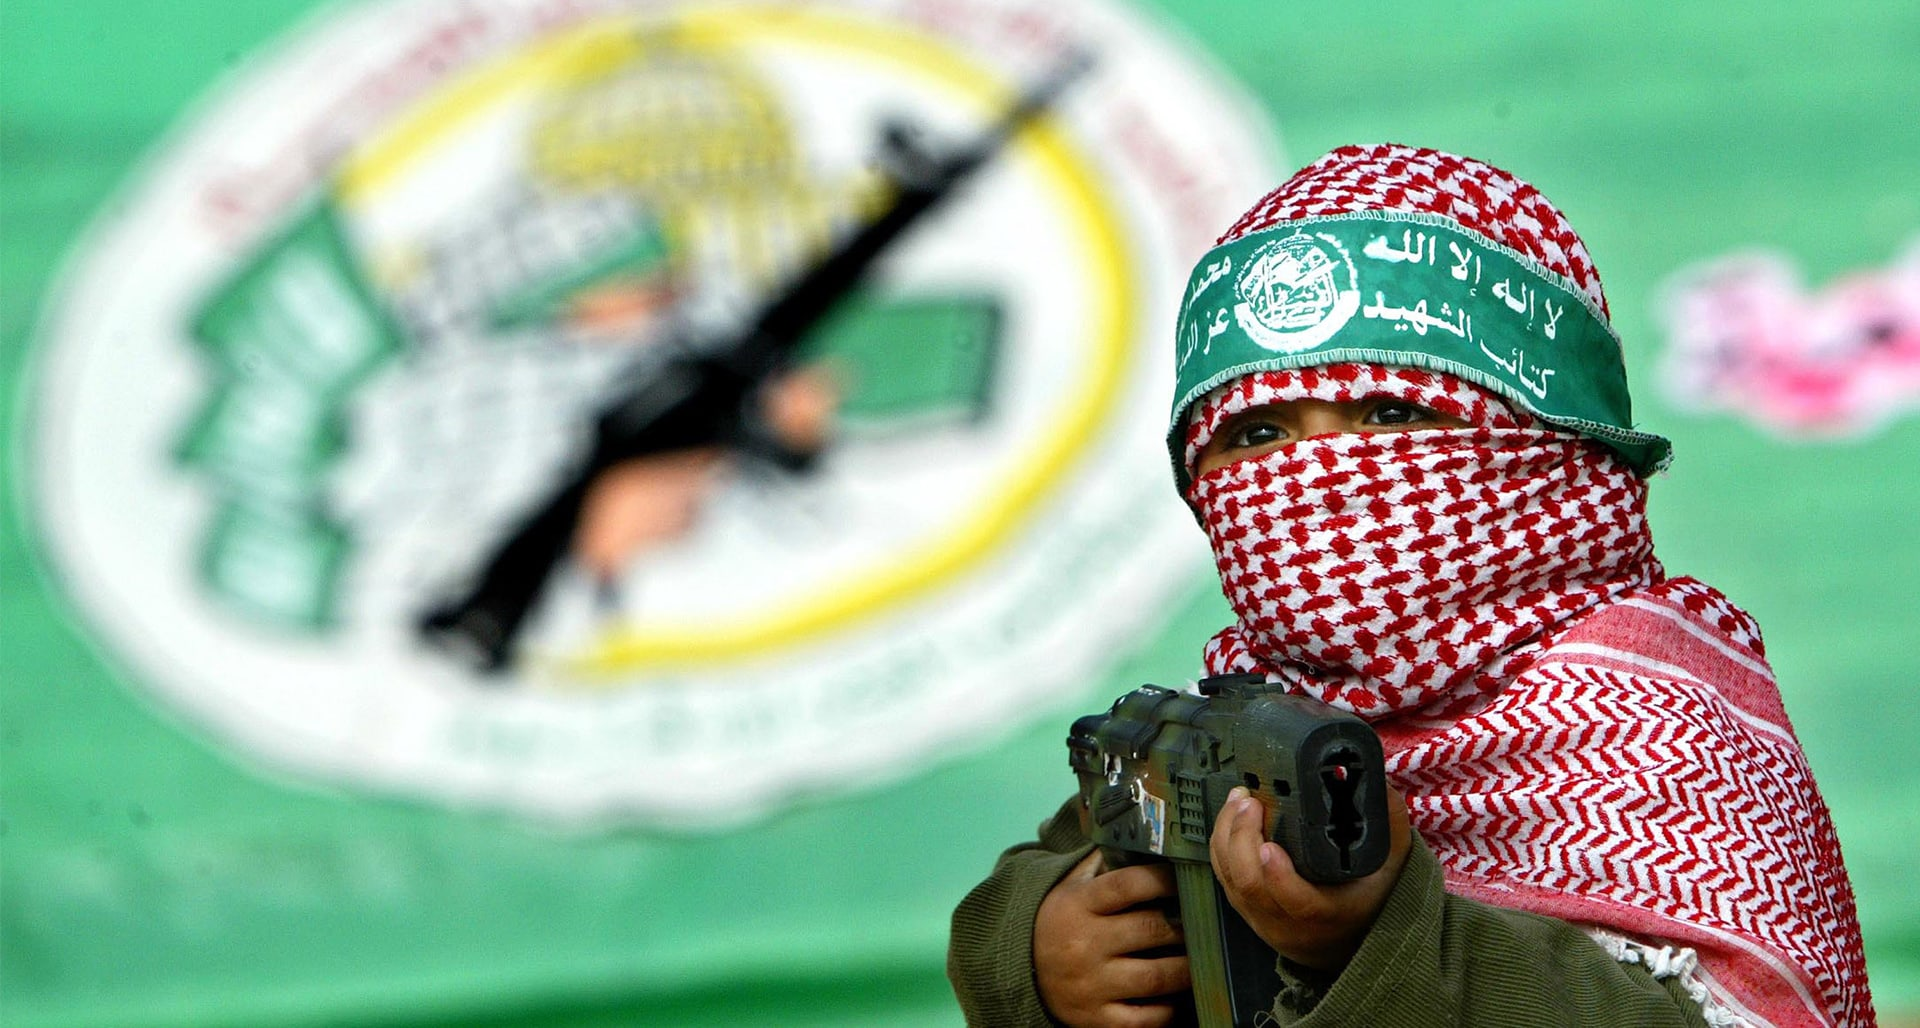 Hamas' Child Soldiers: Where is the Media Outrage? (VIDEO) | Honest Reporting